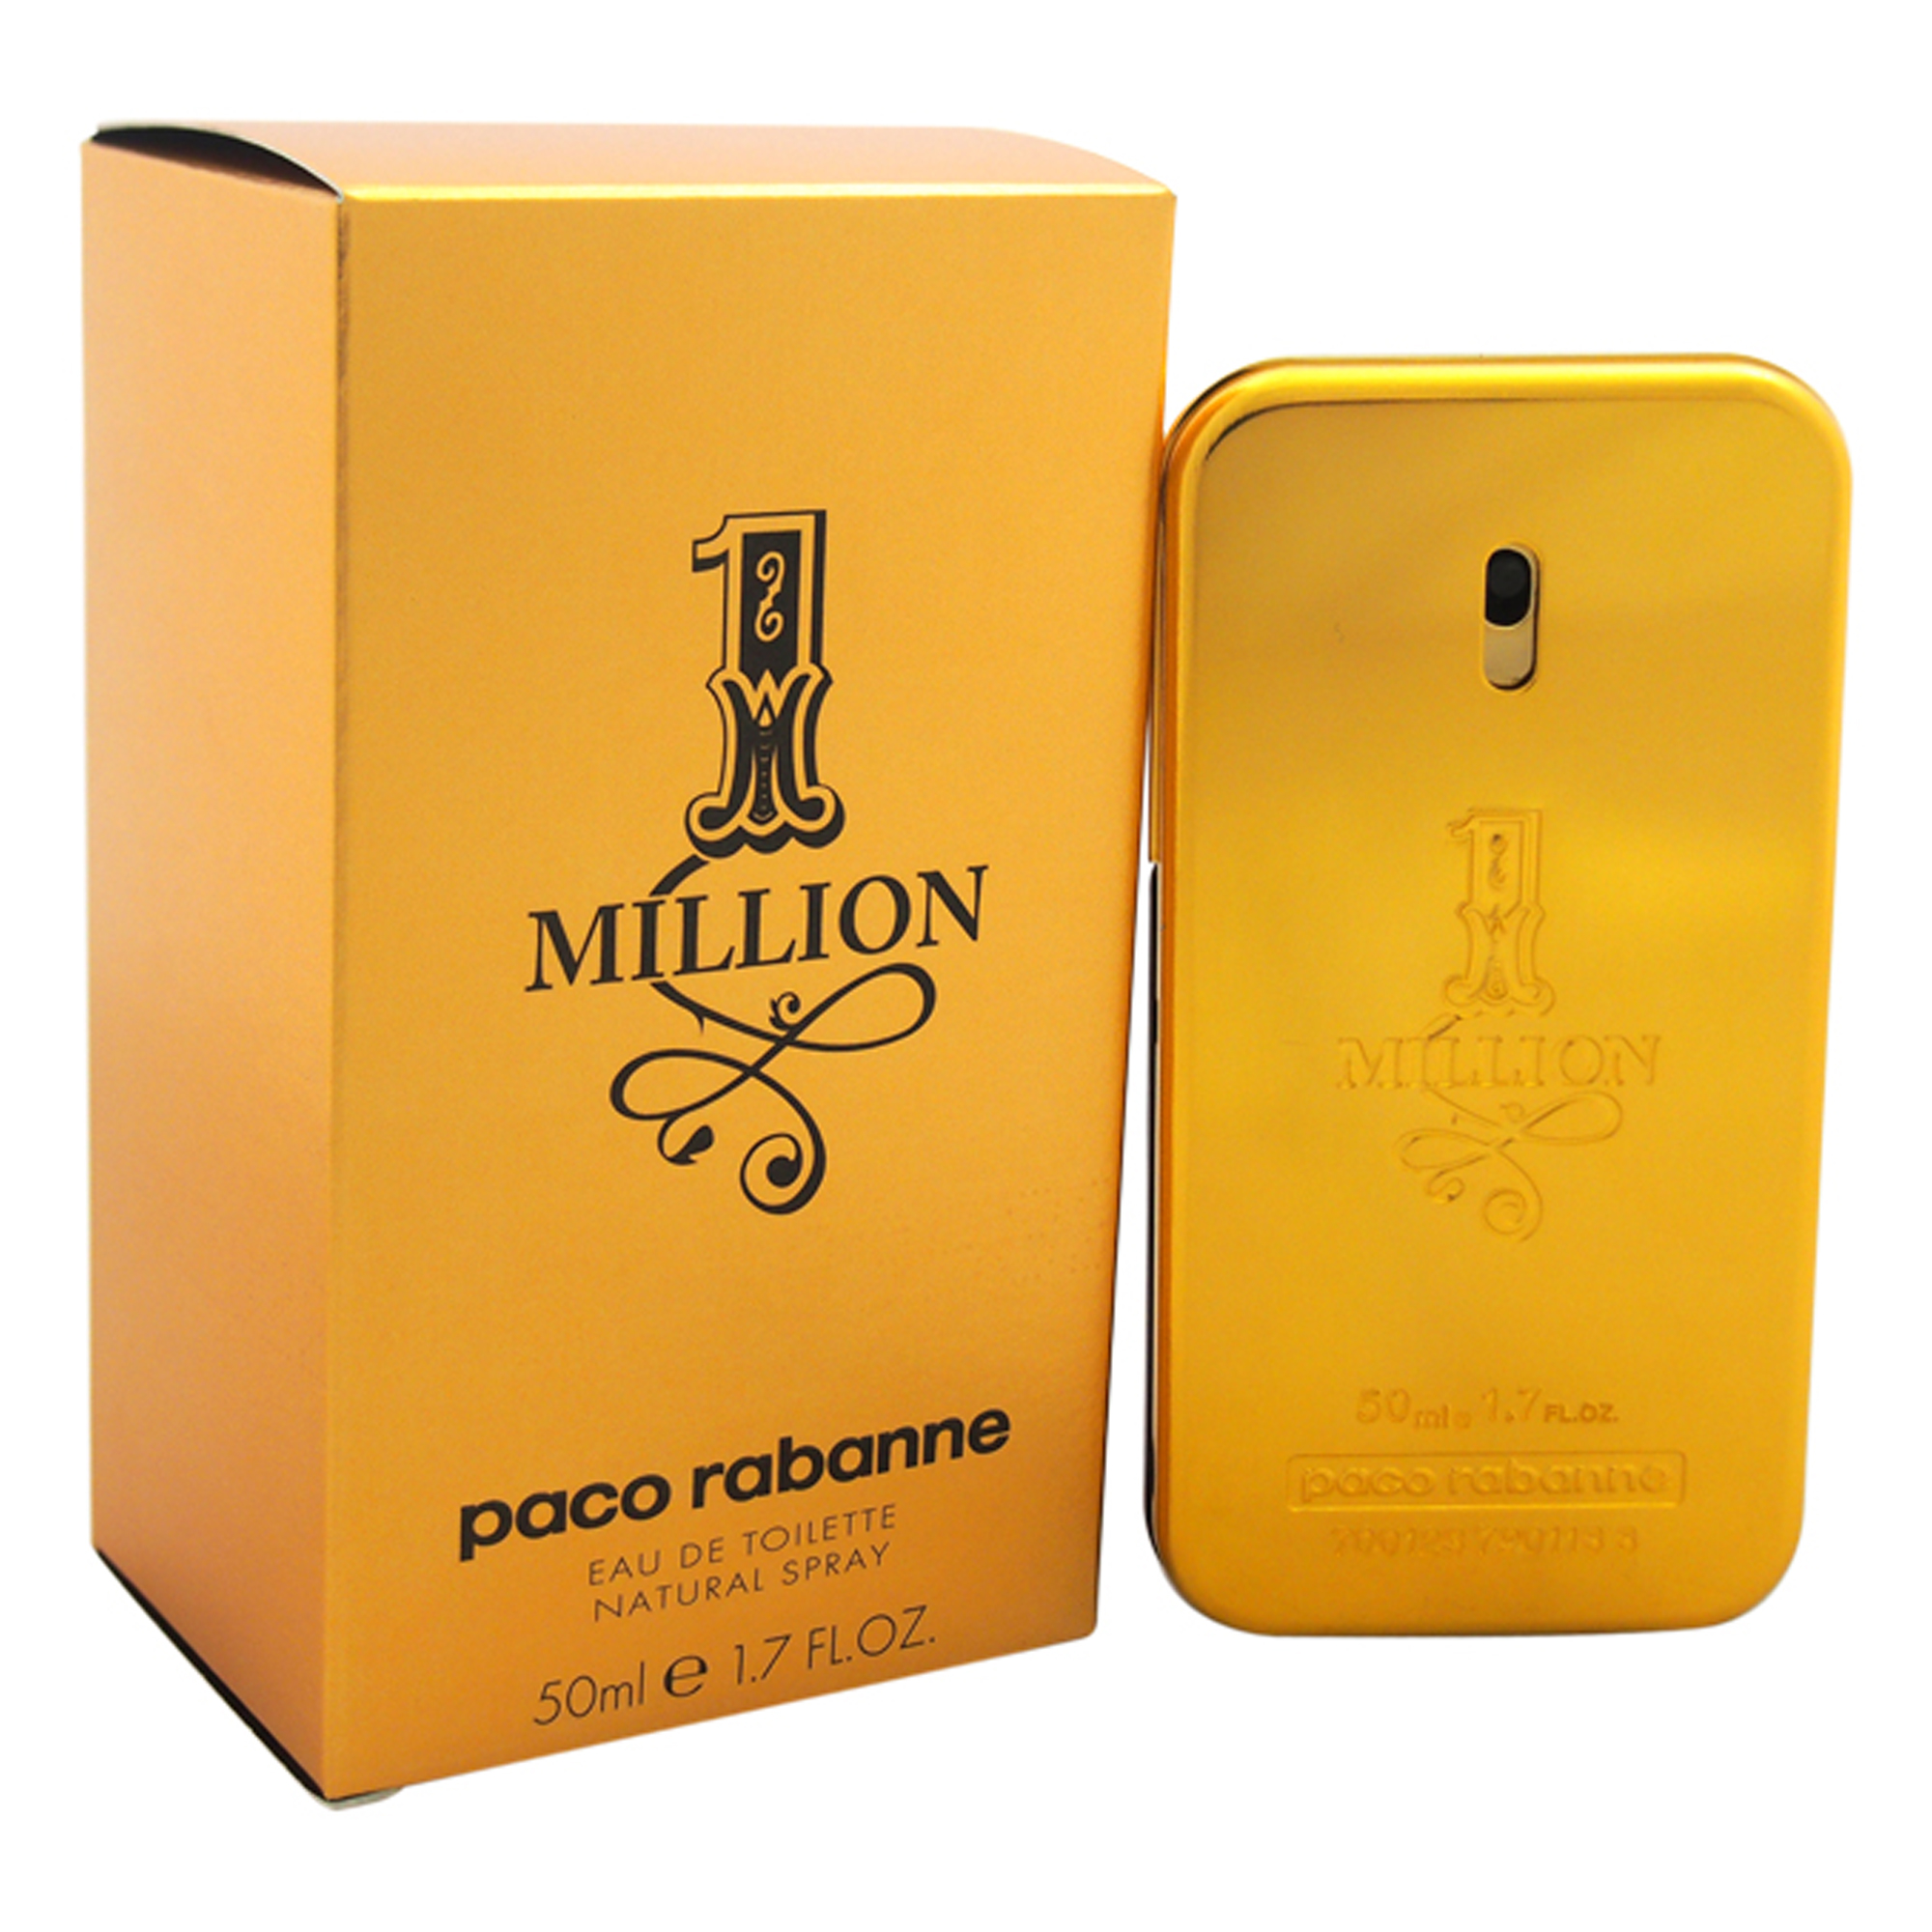 1 Million by Paco Rabanne EDT Spray for Men - 1.7 oz